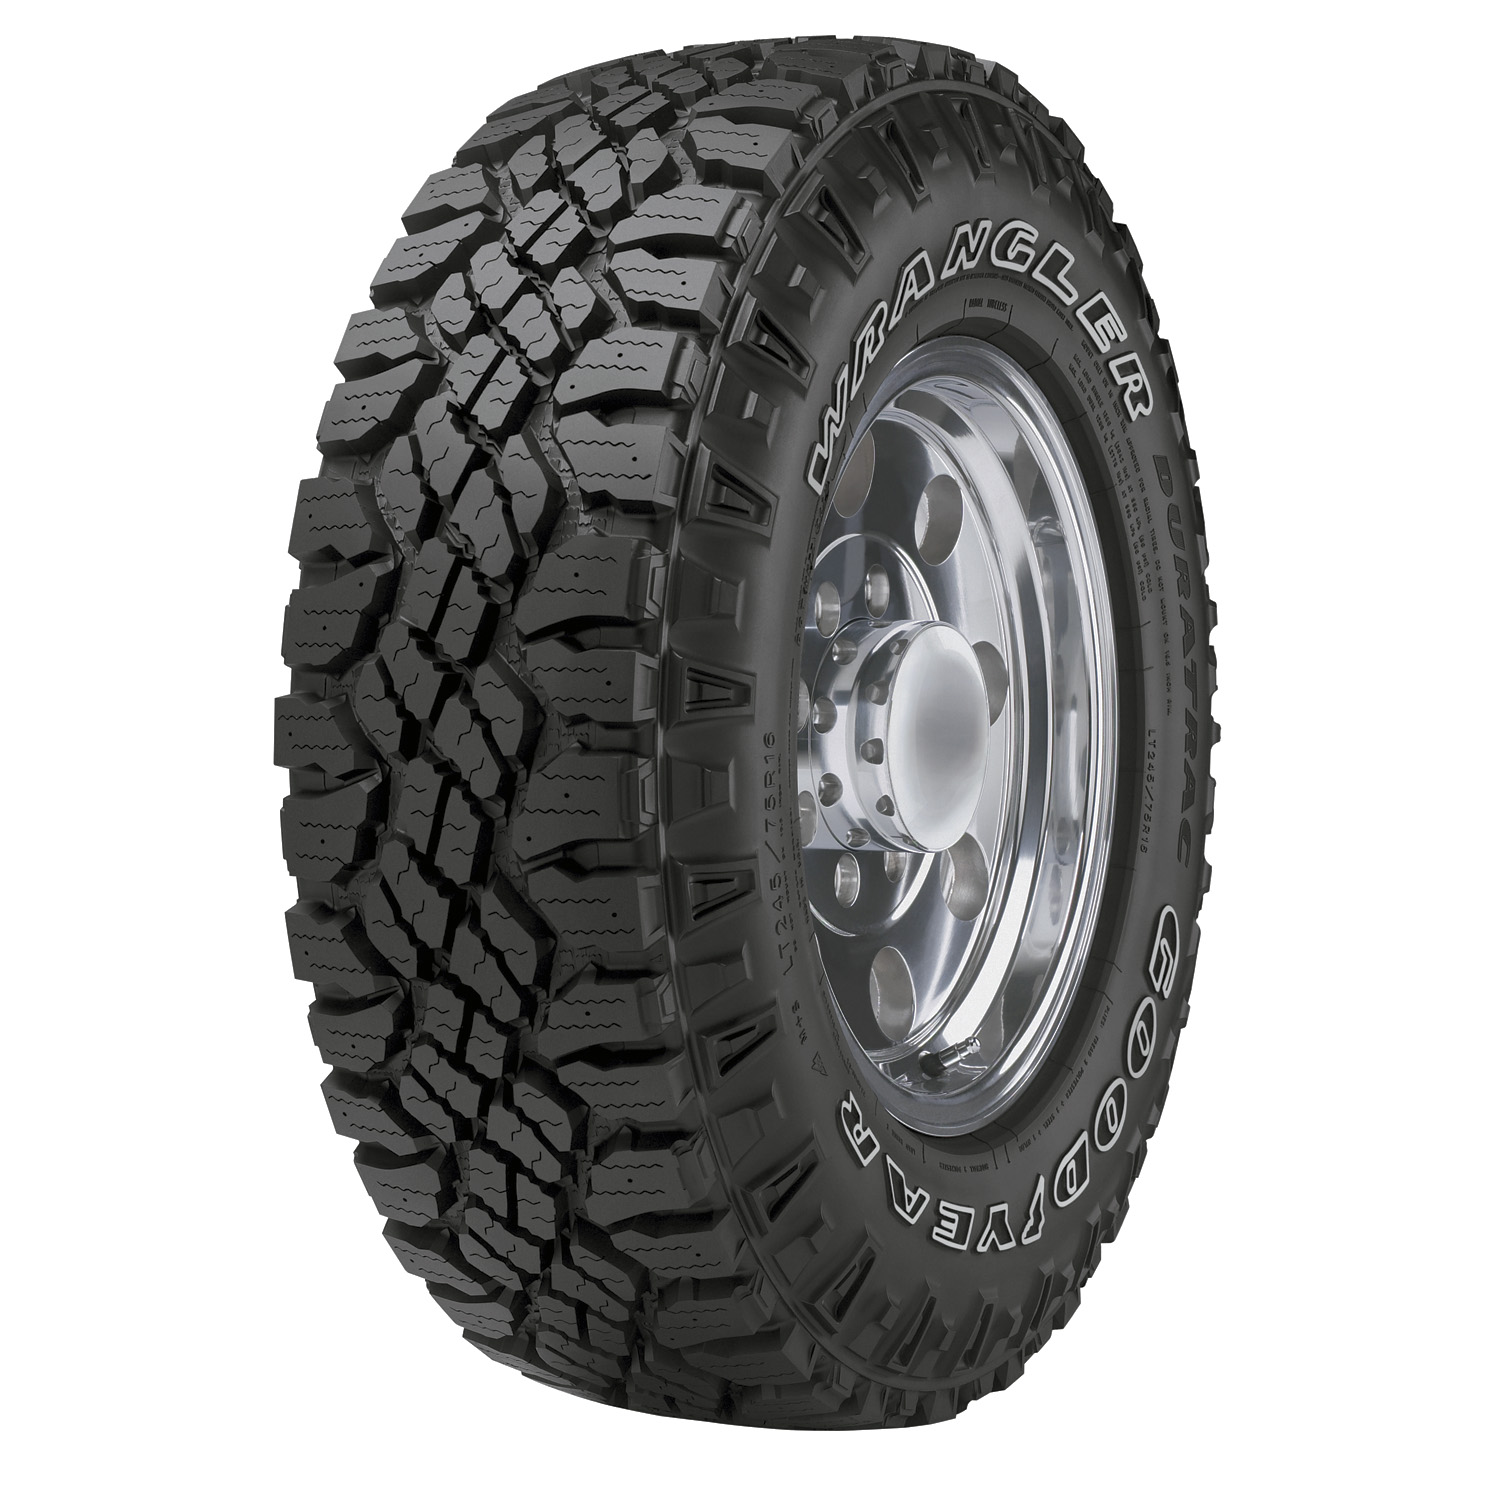 Goodyear  Wrangler Duratrac - LT235/85R16E 120/116Q BSW - All Season Tire